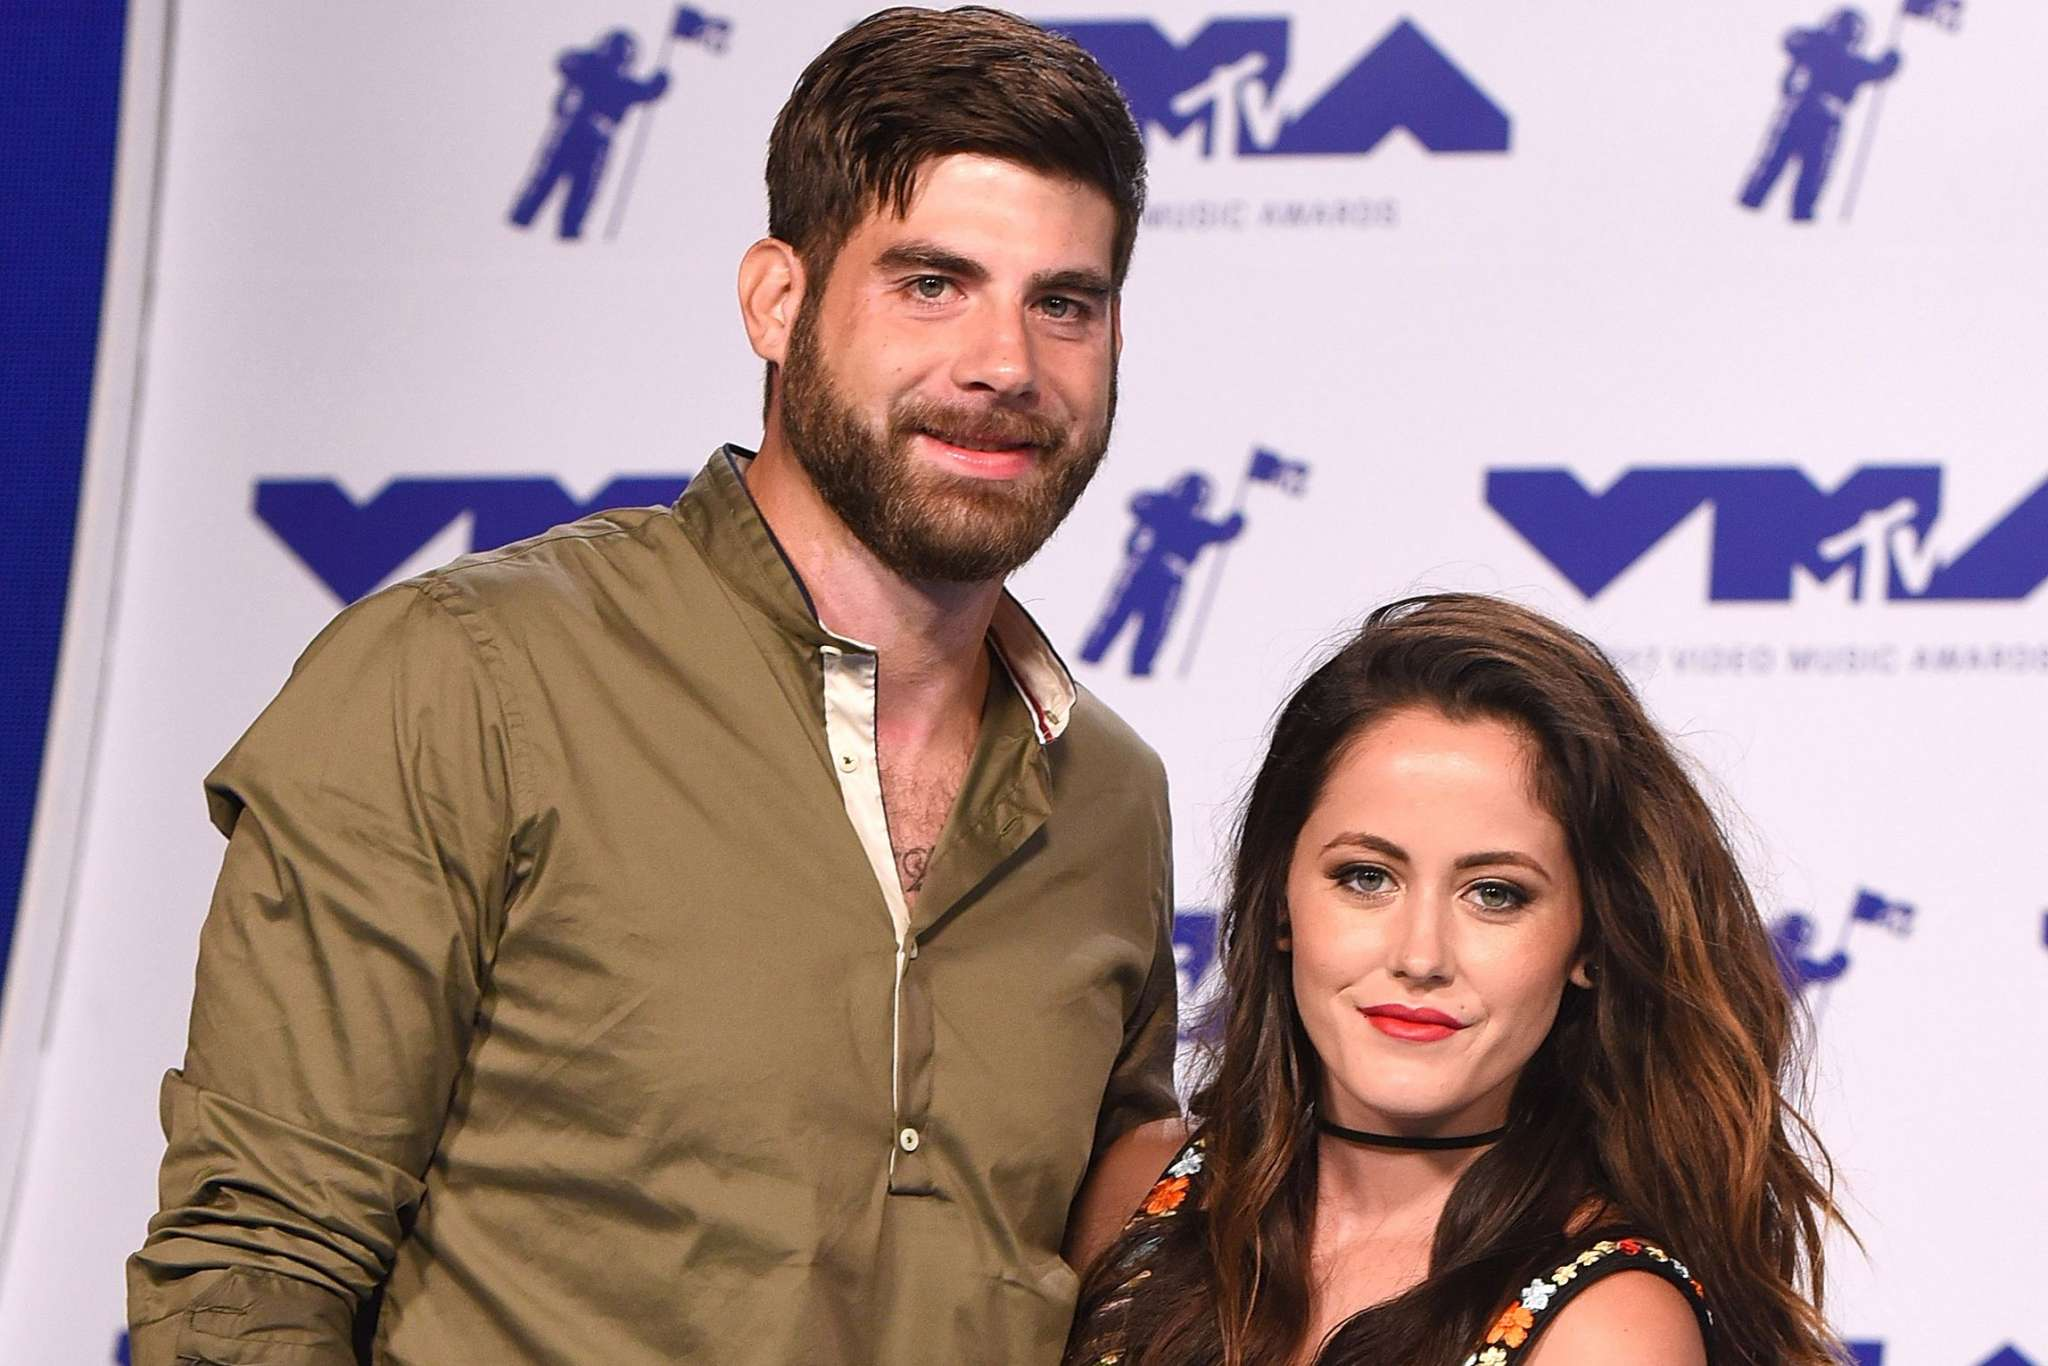 jenelle-evans-reportedly-furious-over-losing-her-son-tensions-with-david-eason-on-the-rise